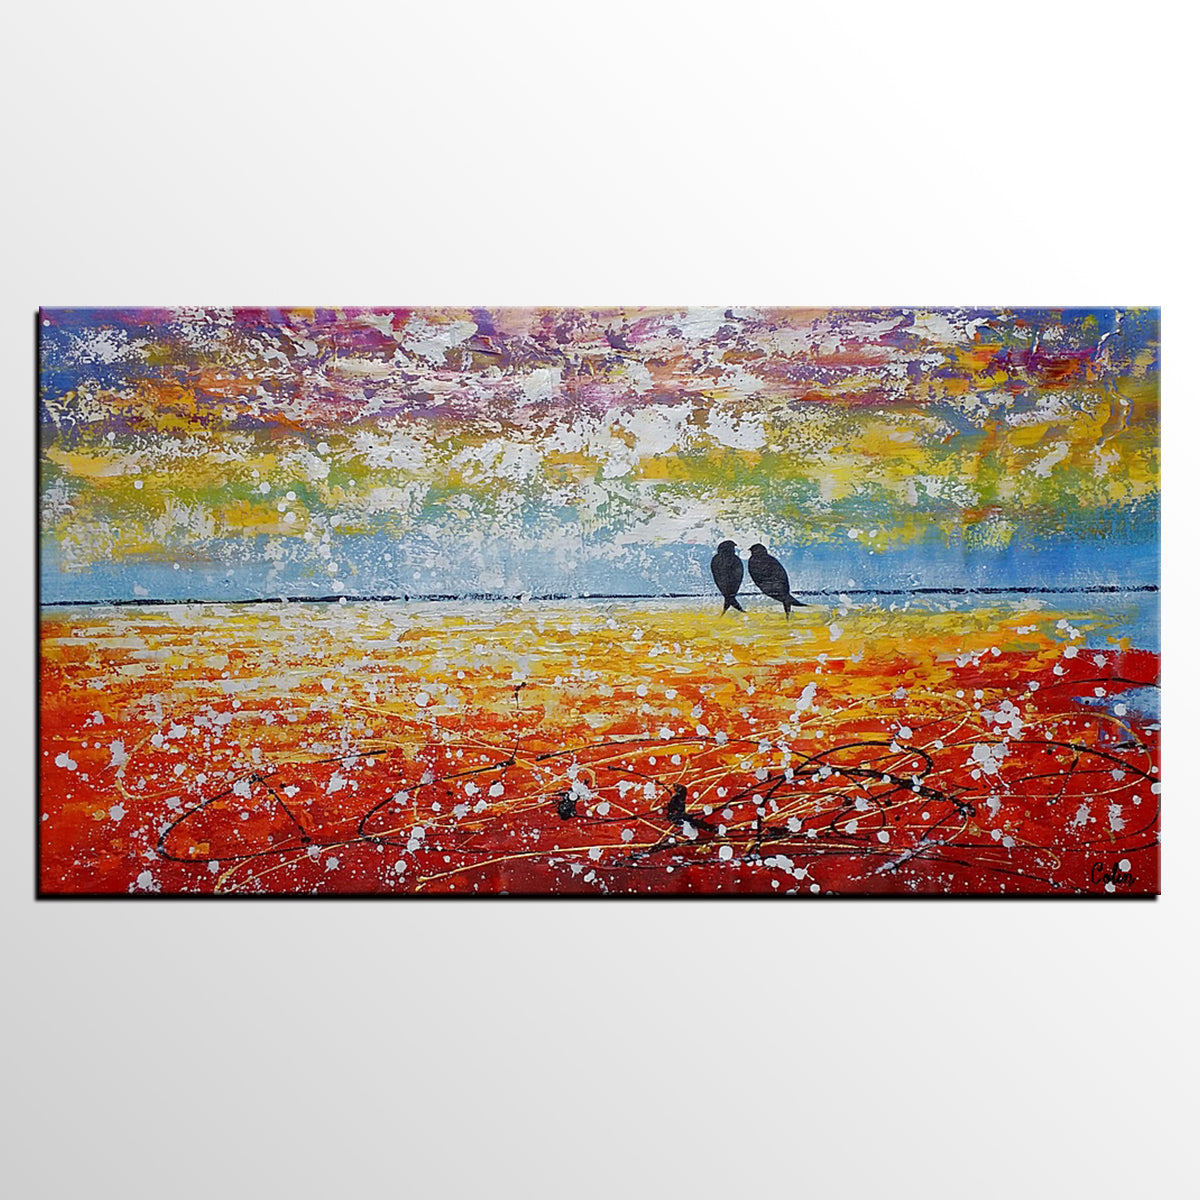 Living Room Wall Art, Abstract Art, Love Birds Painting, Canvas Art, Canvas Painting - artworkcanvas